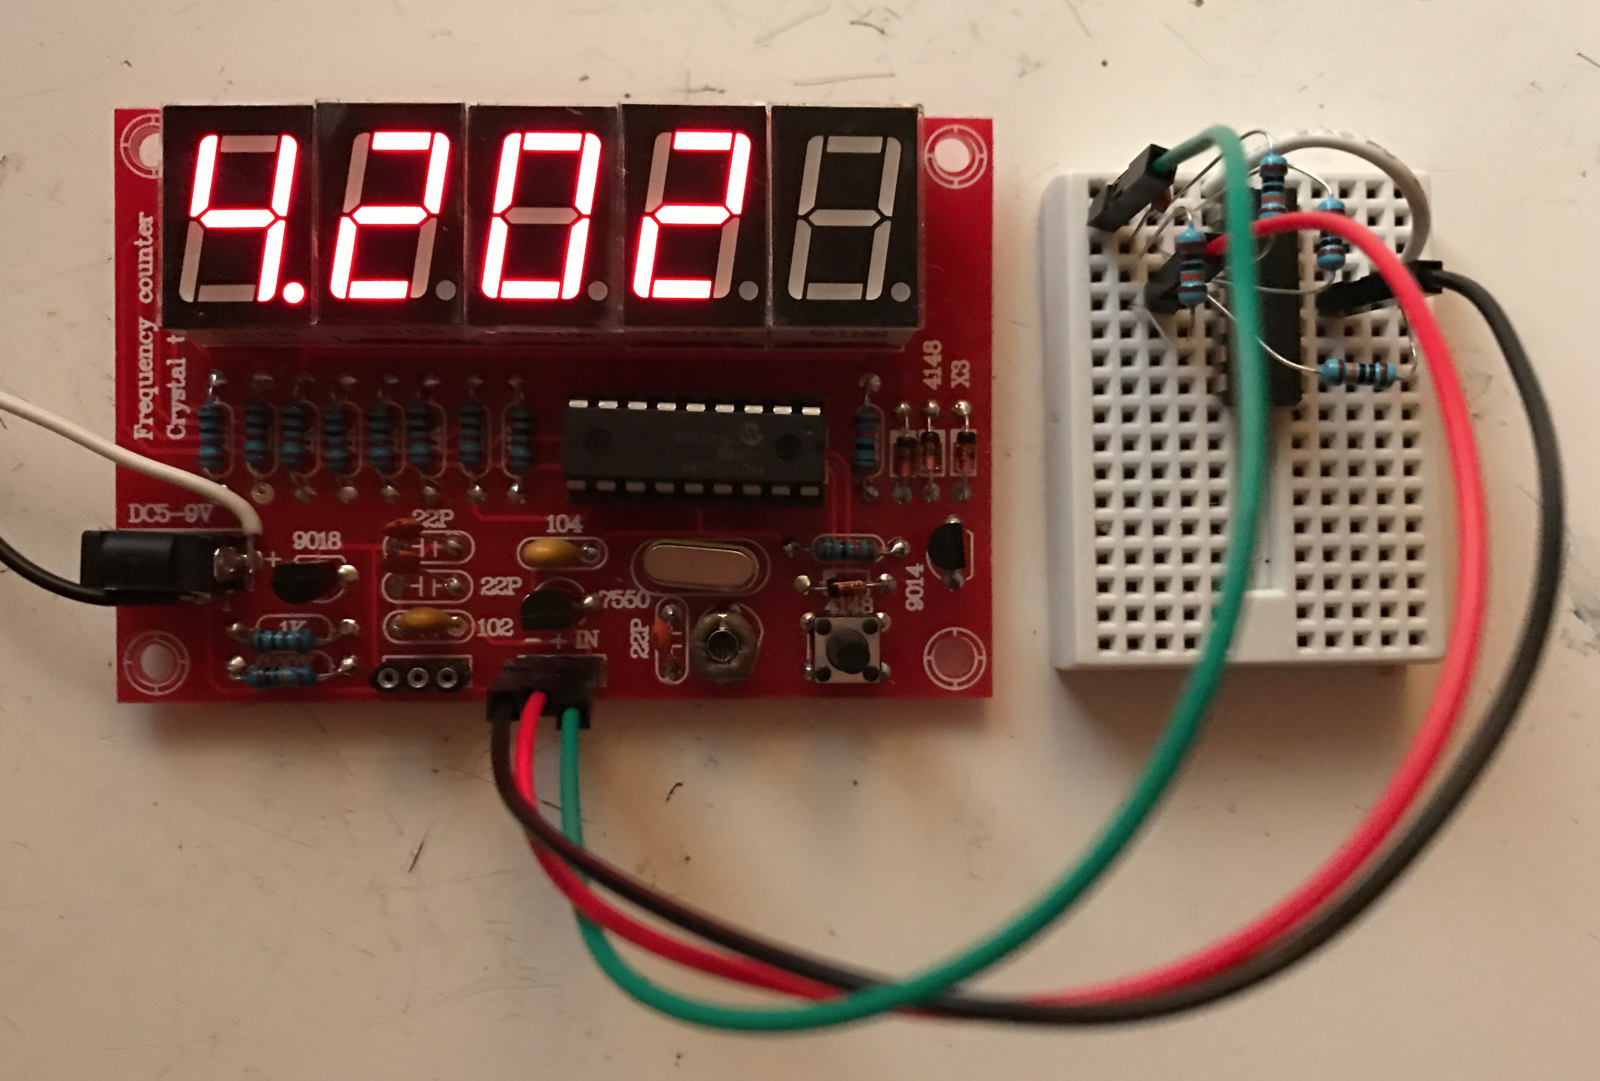 Crystal Oscillator Tester Frequency Counter Kit Review The Circuit Was Designed To Create A Low Cost Meter That Finally We Can Measure Is Powered By 5 V Which Directly Connects Through 3 Pin Header Opamp Square Wave